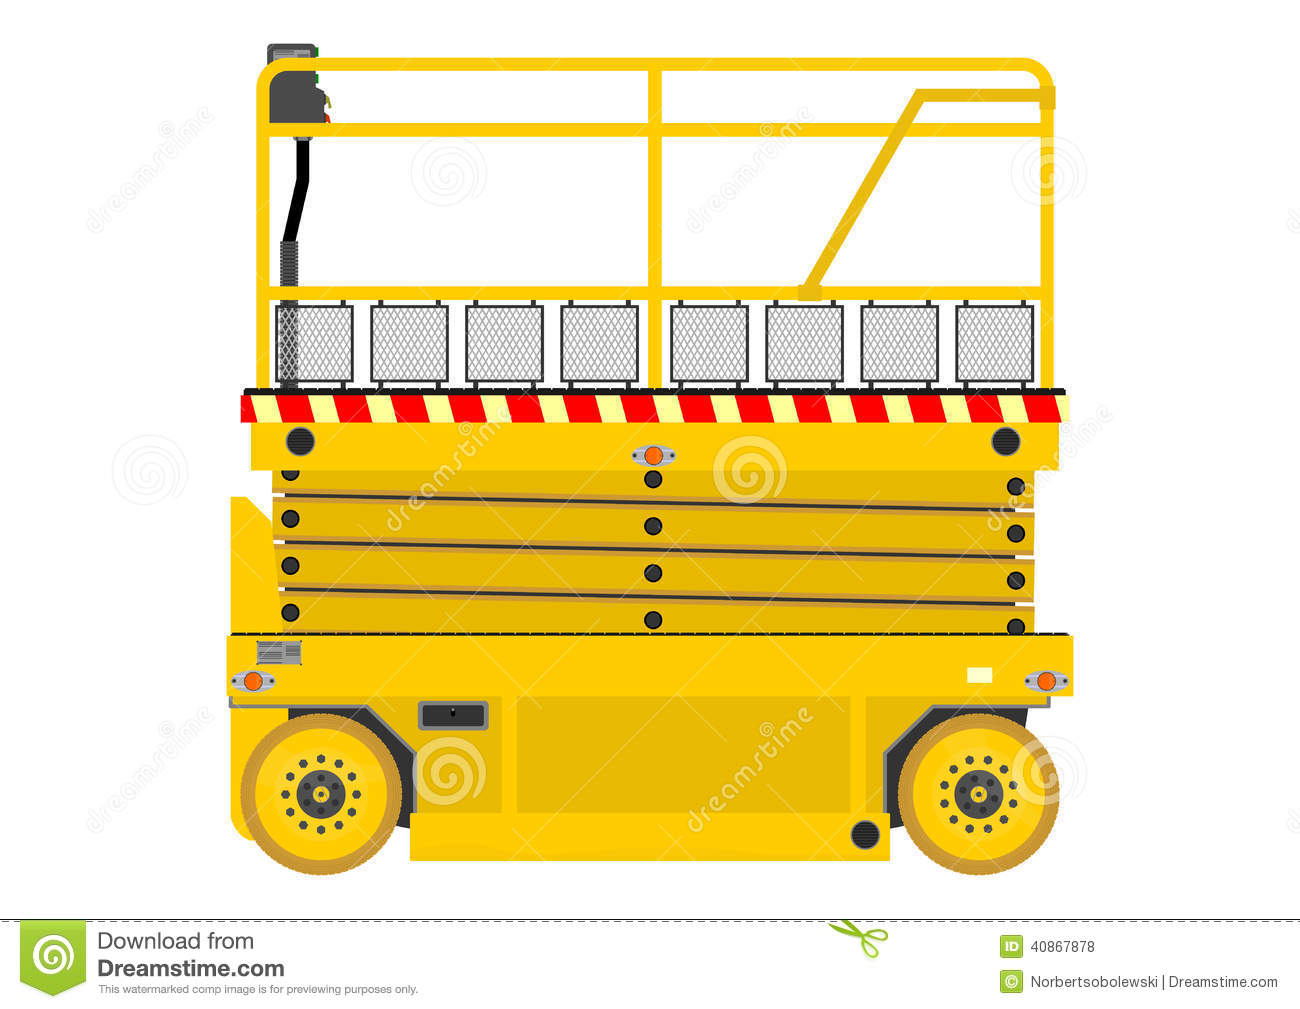 hight resolution of eagle lift gate truck wiring diagrams brass eagle economy scissor lift wiring diagram economy scissor lift wiring diagram